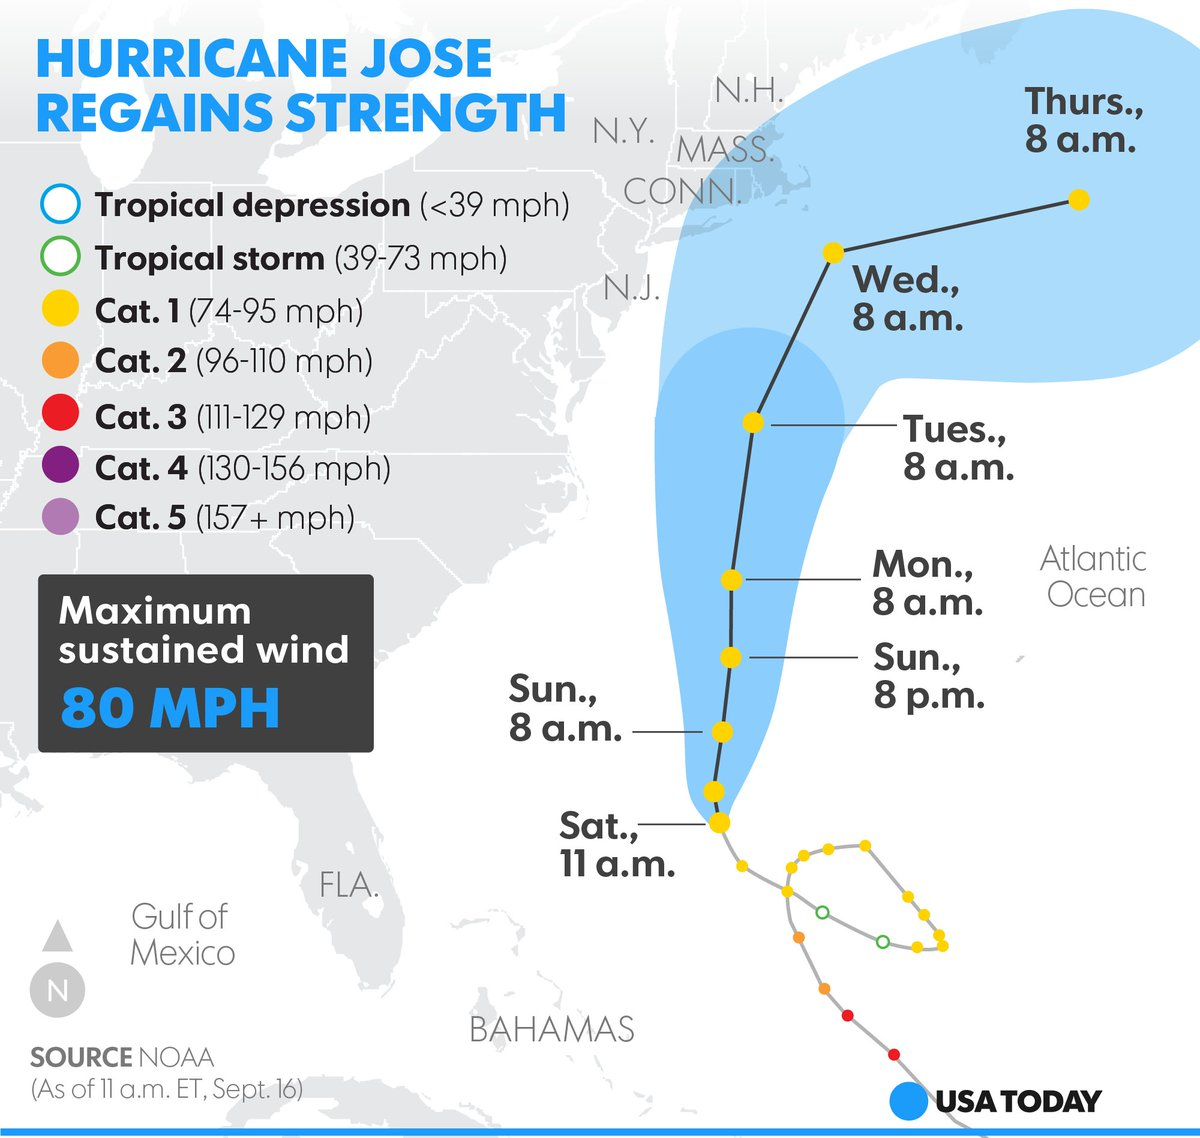 Hurricane season is roaring on as Jose threatens the East Coast.